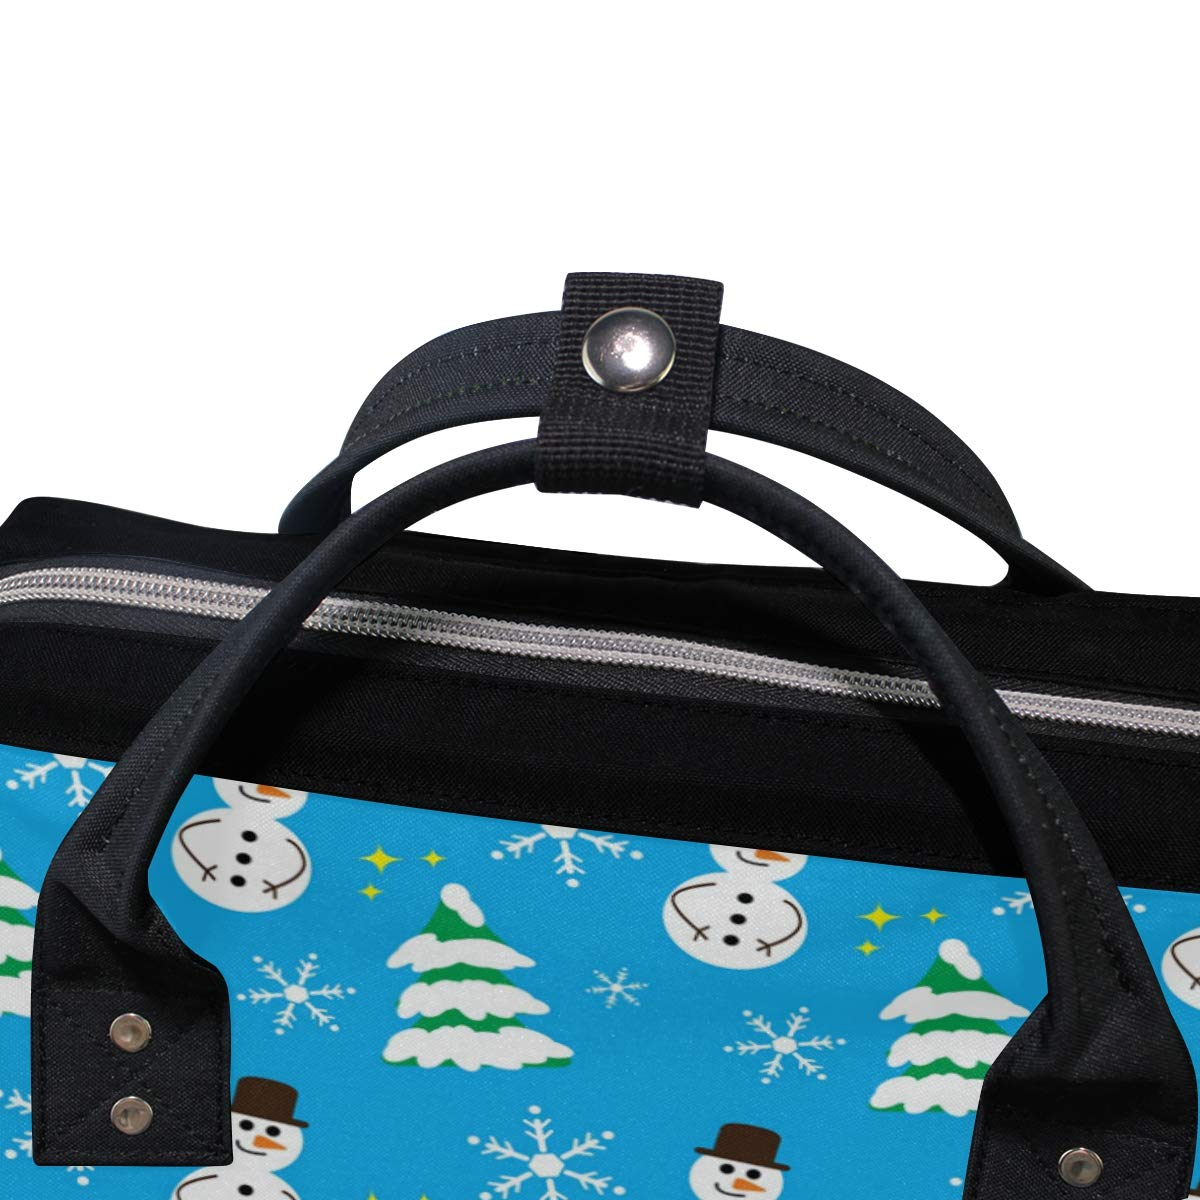 imobaby Cute Snowman And Trees Changing Bags Large Capacity Handbags Canvas Shoulder Bag Backpack